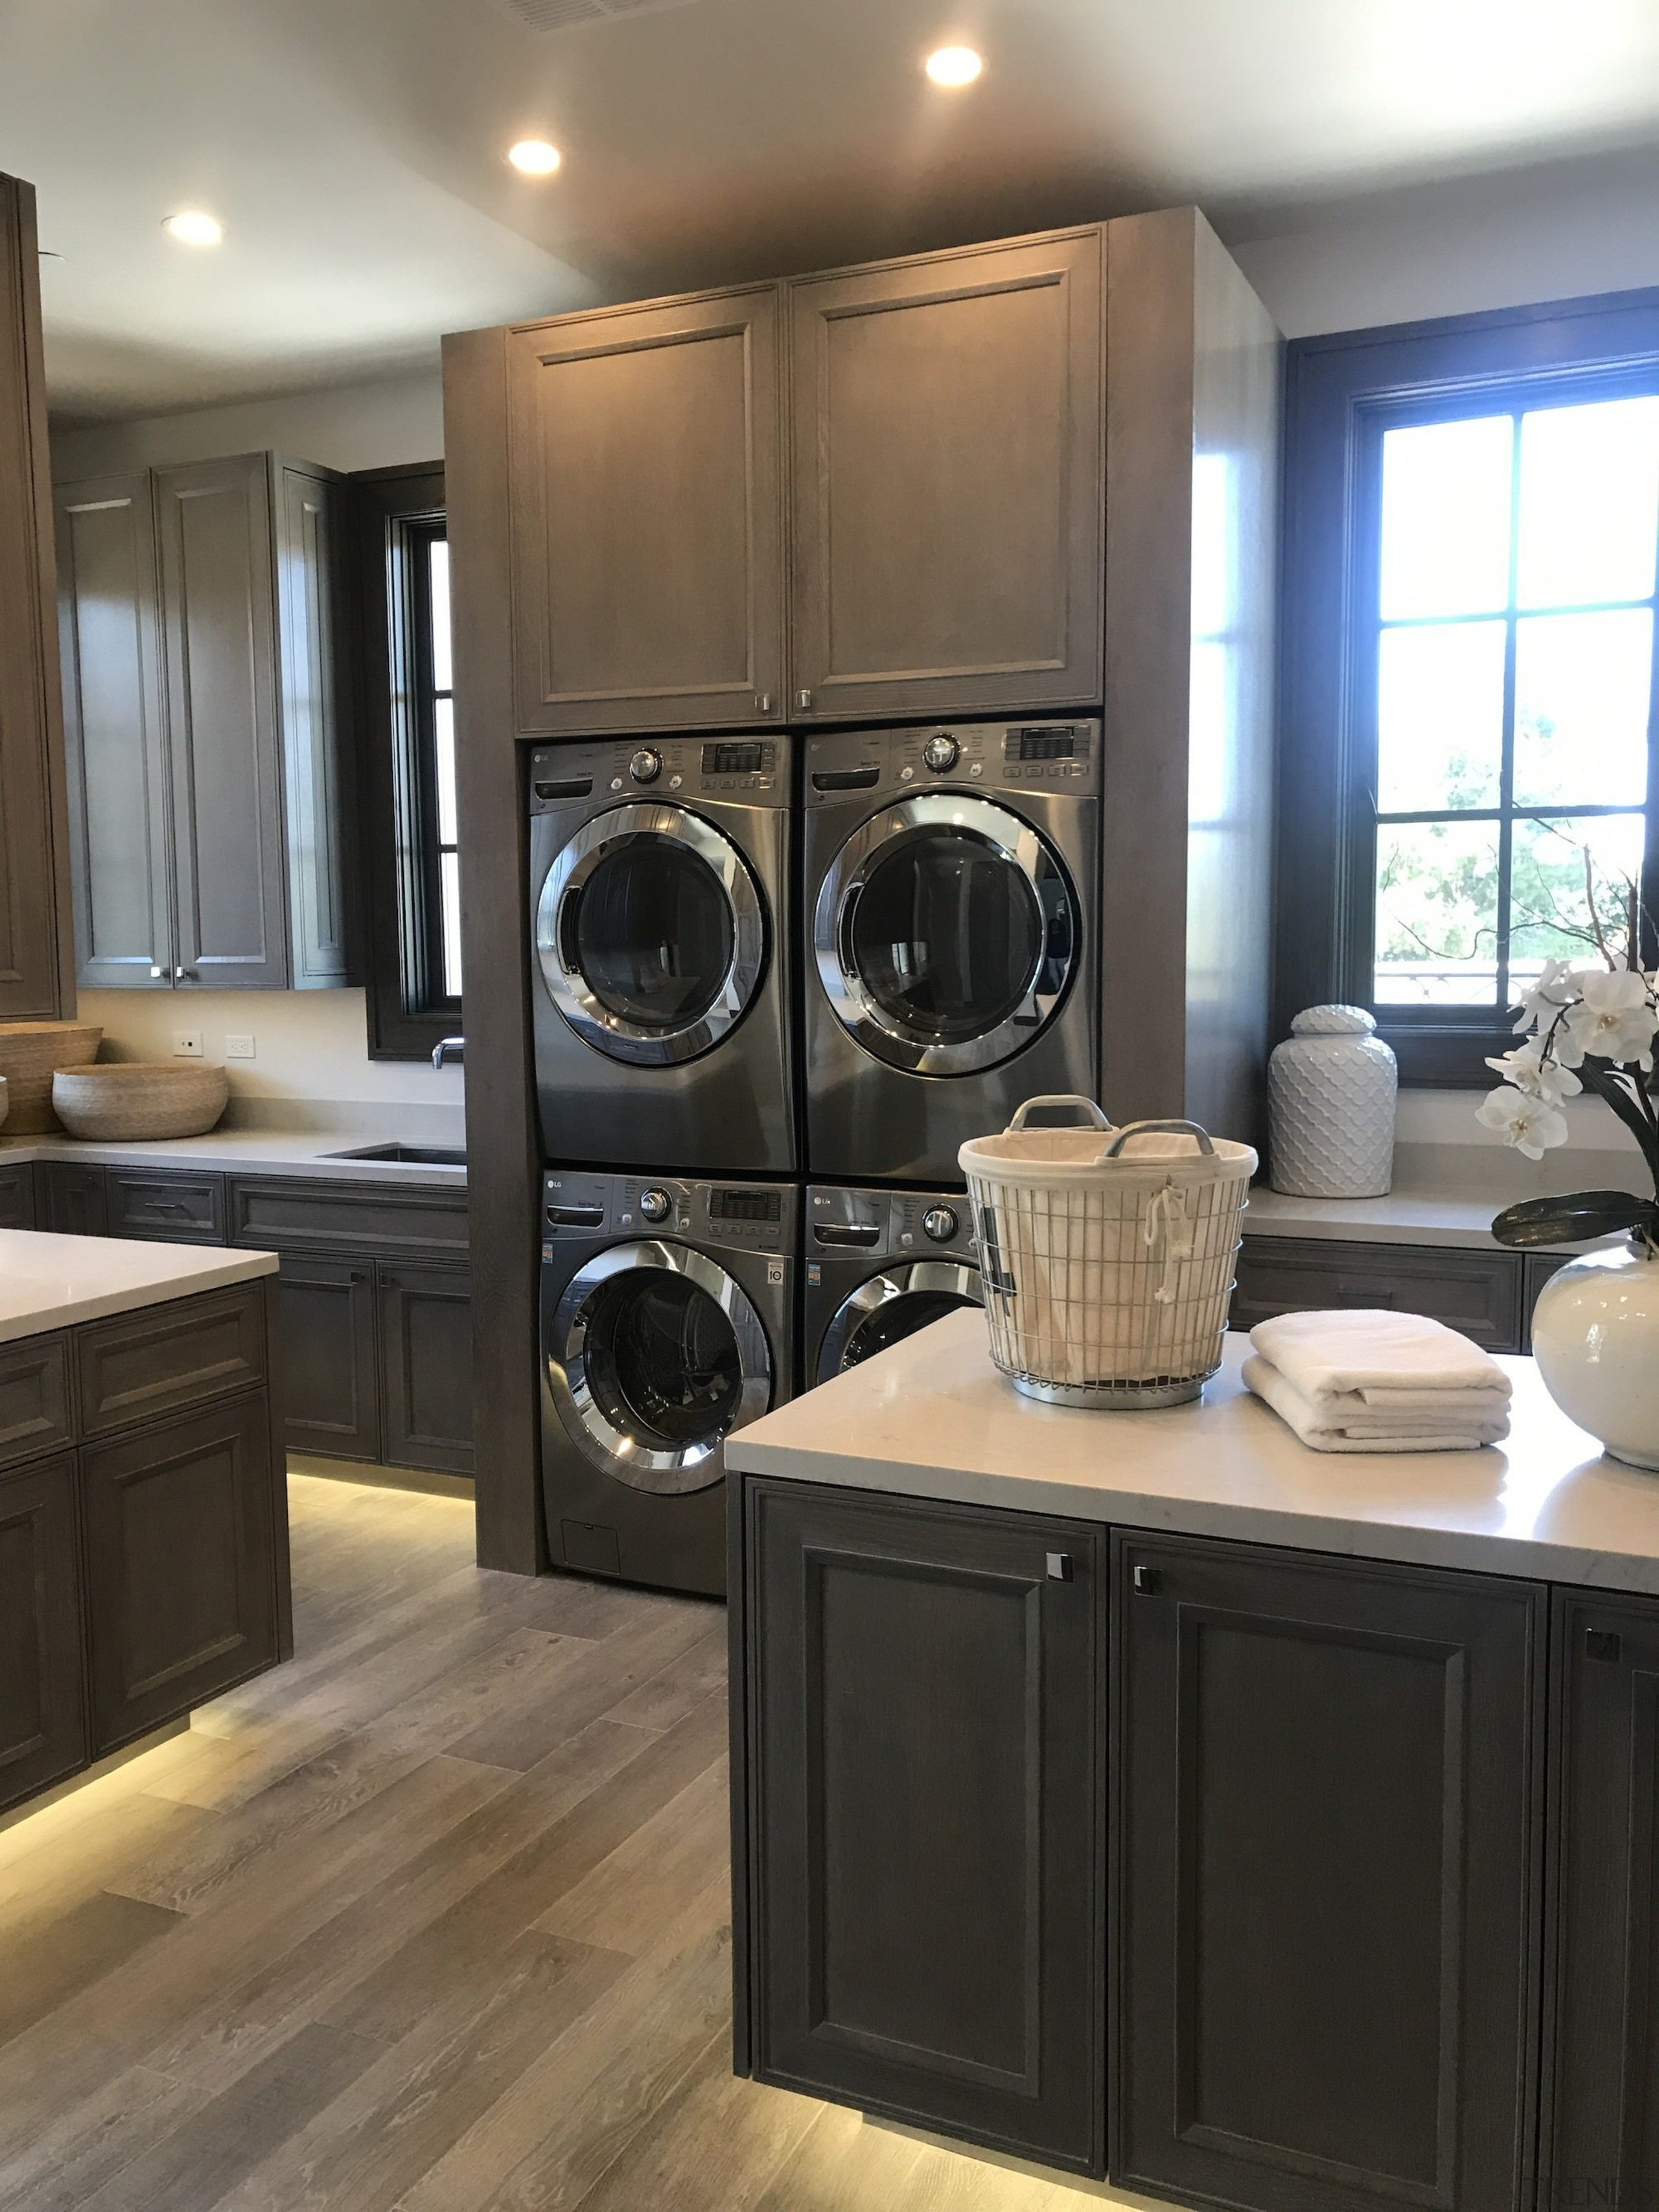 Polselli Laundry - Shanna Kerr - client is cabinetry, countertop, home appliance, interior design, kitchen, laundry, laundry room, major appliance, room, washing machine, black